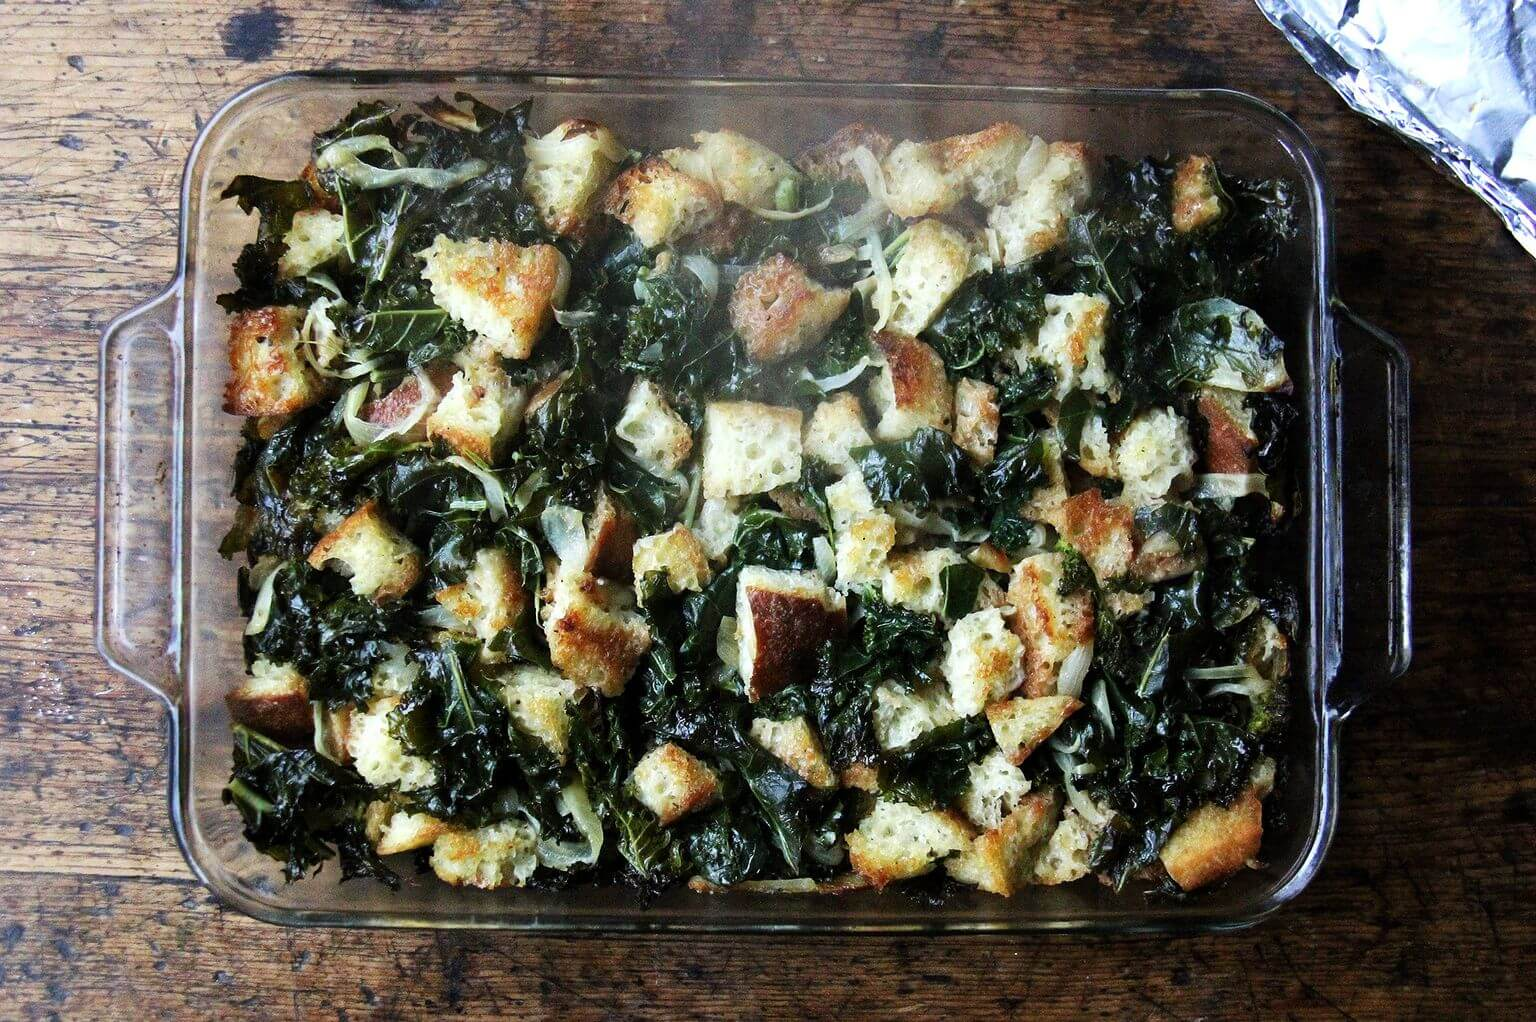 A 9x13-inch pan filled with just-baked stuffing, baked directly from the freezer.